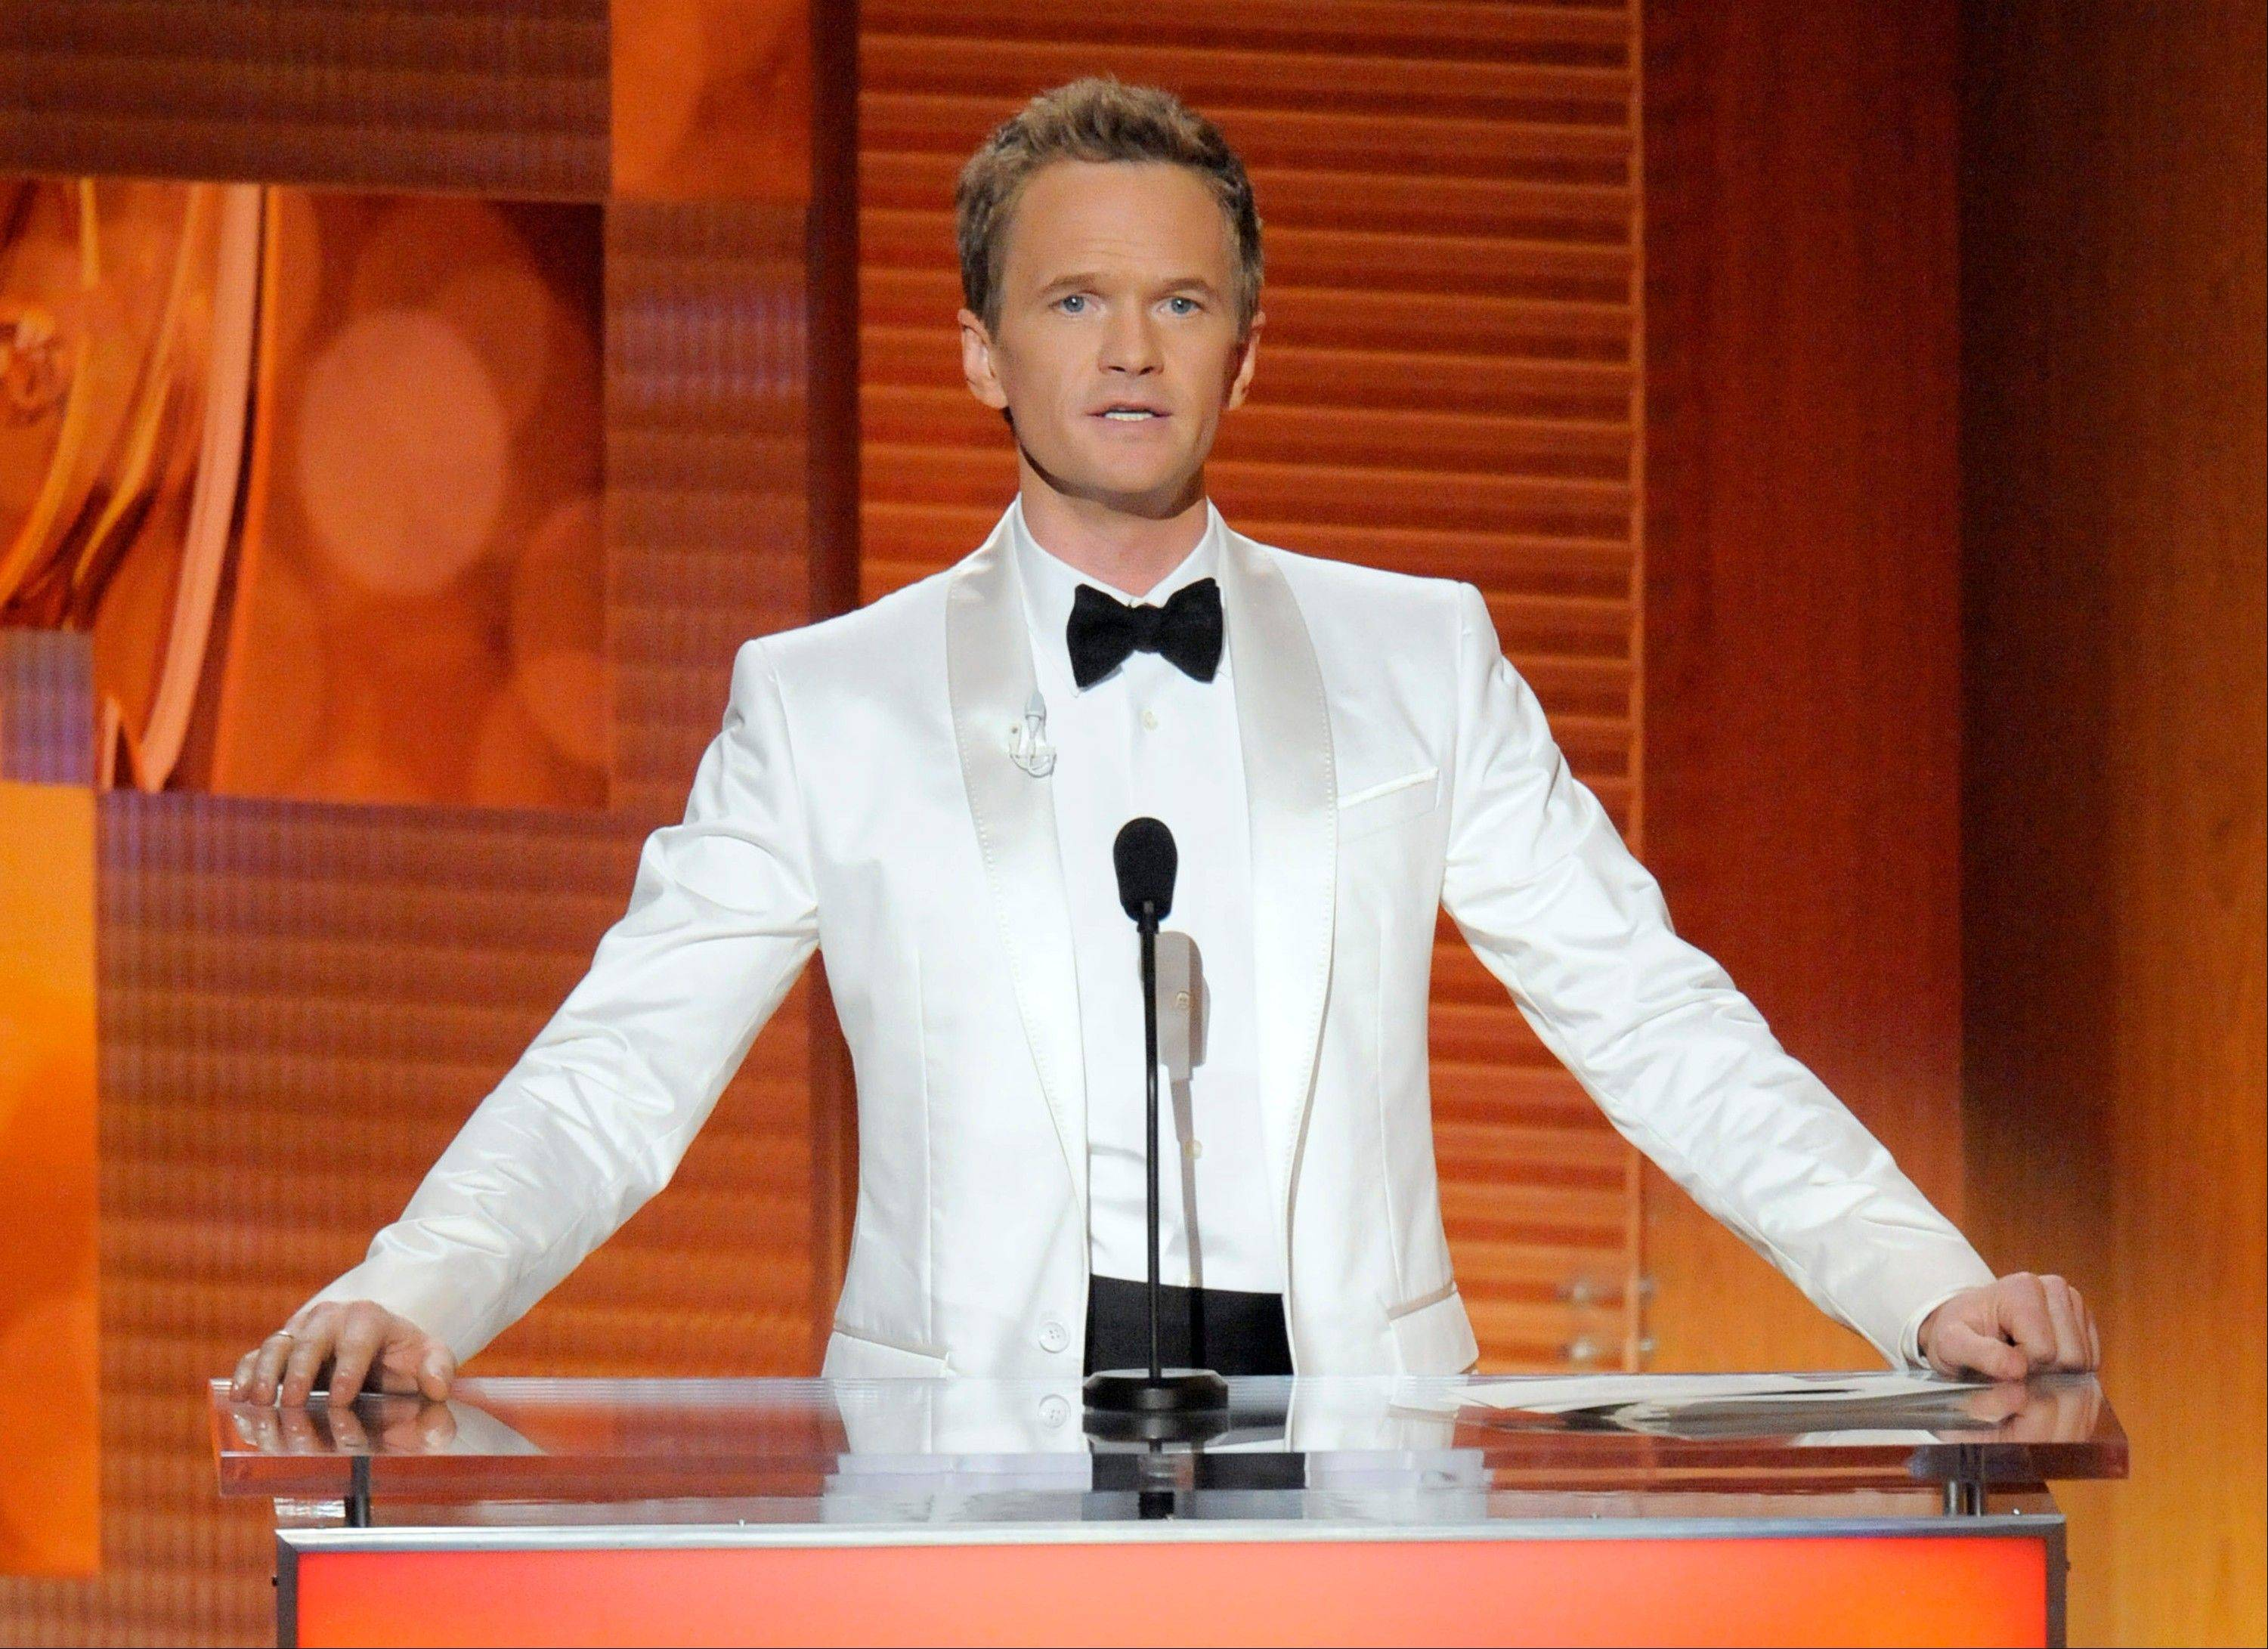 Neil Patrick Harris will be back to host the Emmys on Sept. 22.